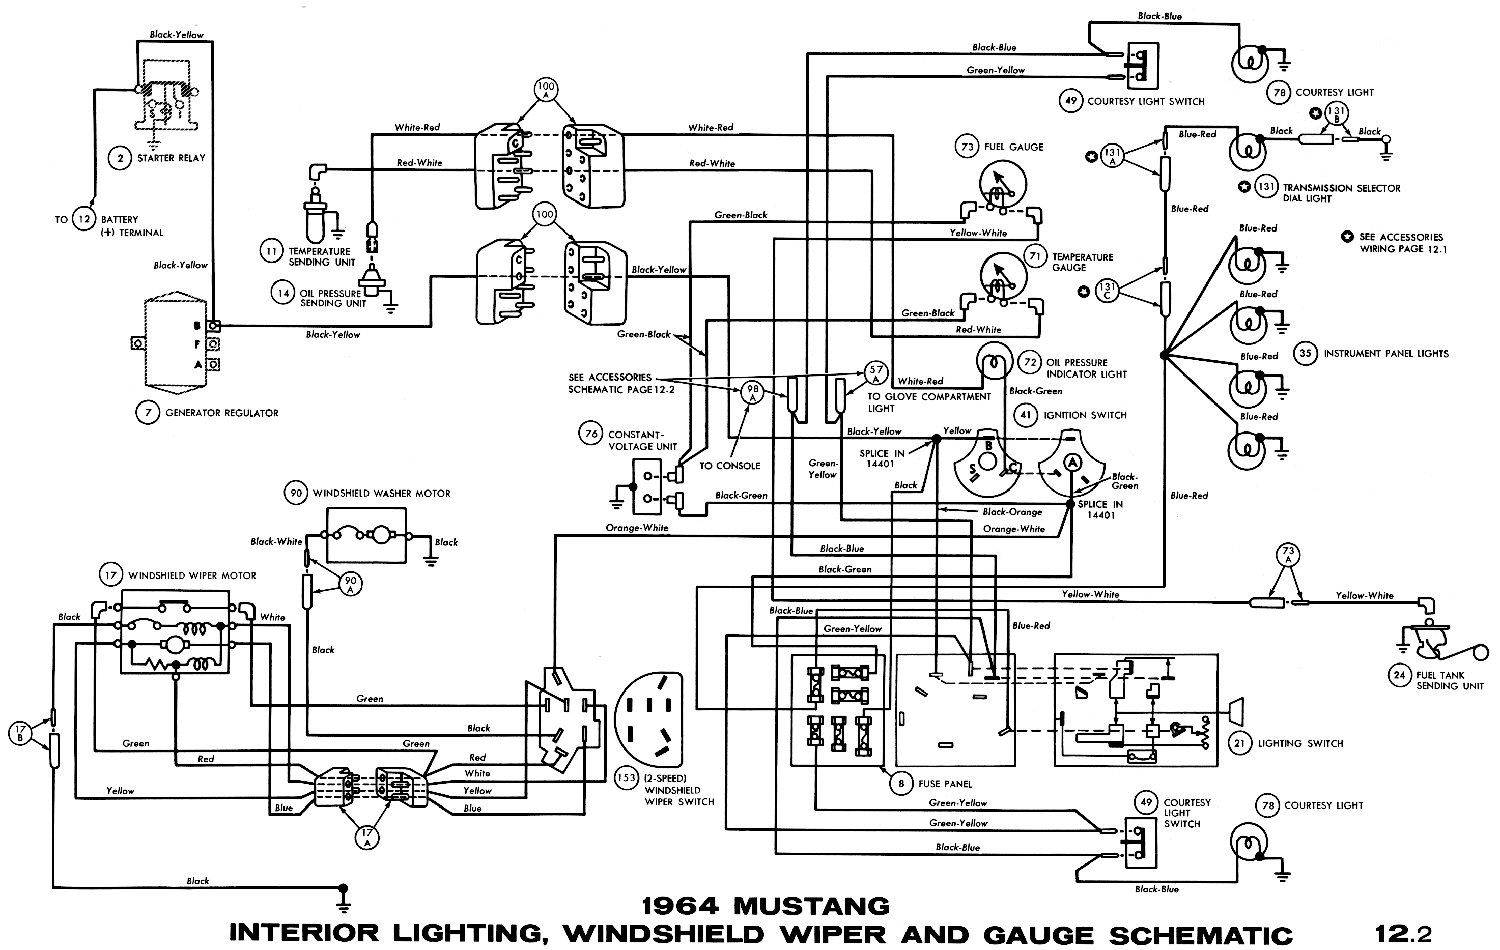 el ritningar rh ht67 com 1964 Mustang Tail Light Wiring Diagram 1965 Ford Mustang Wiring Diagram